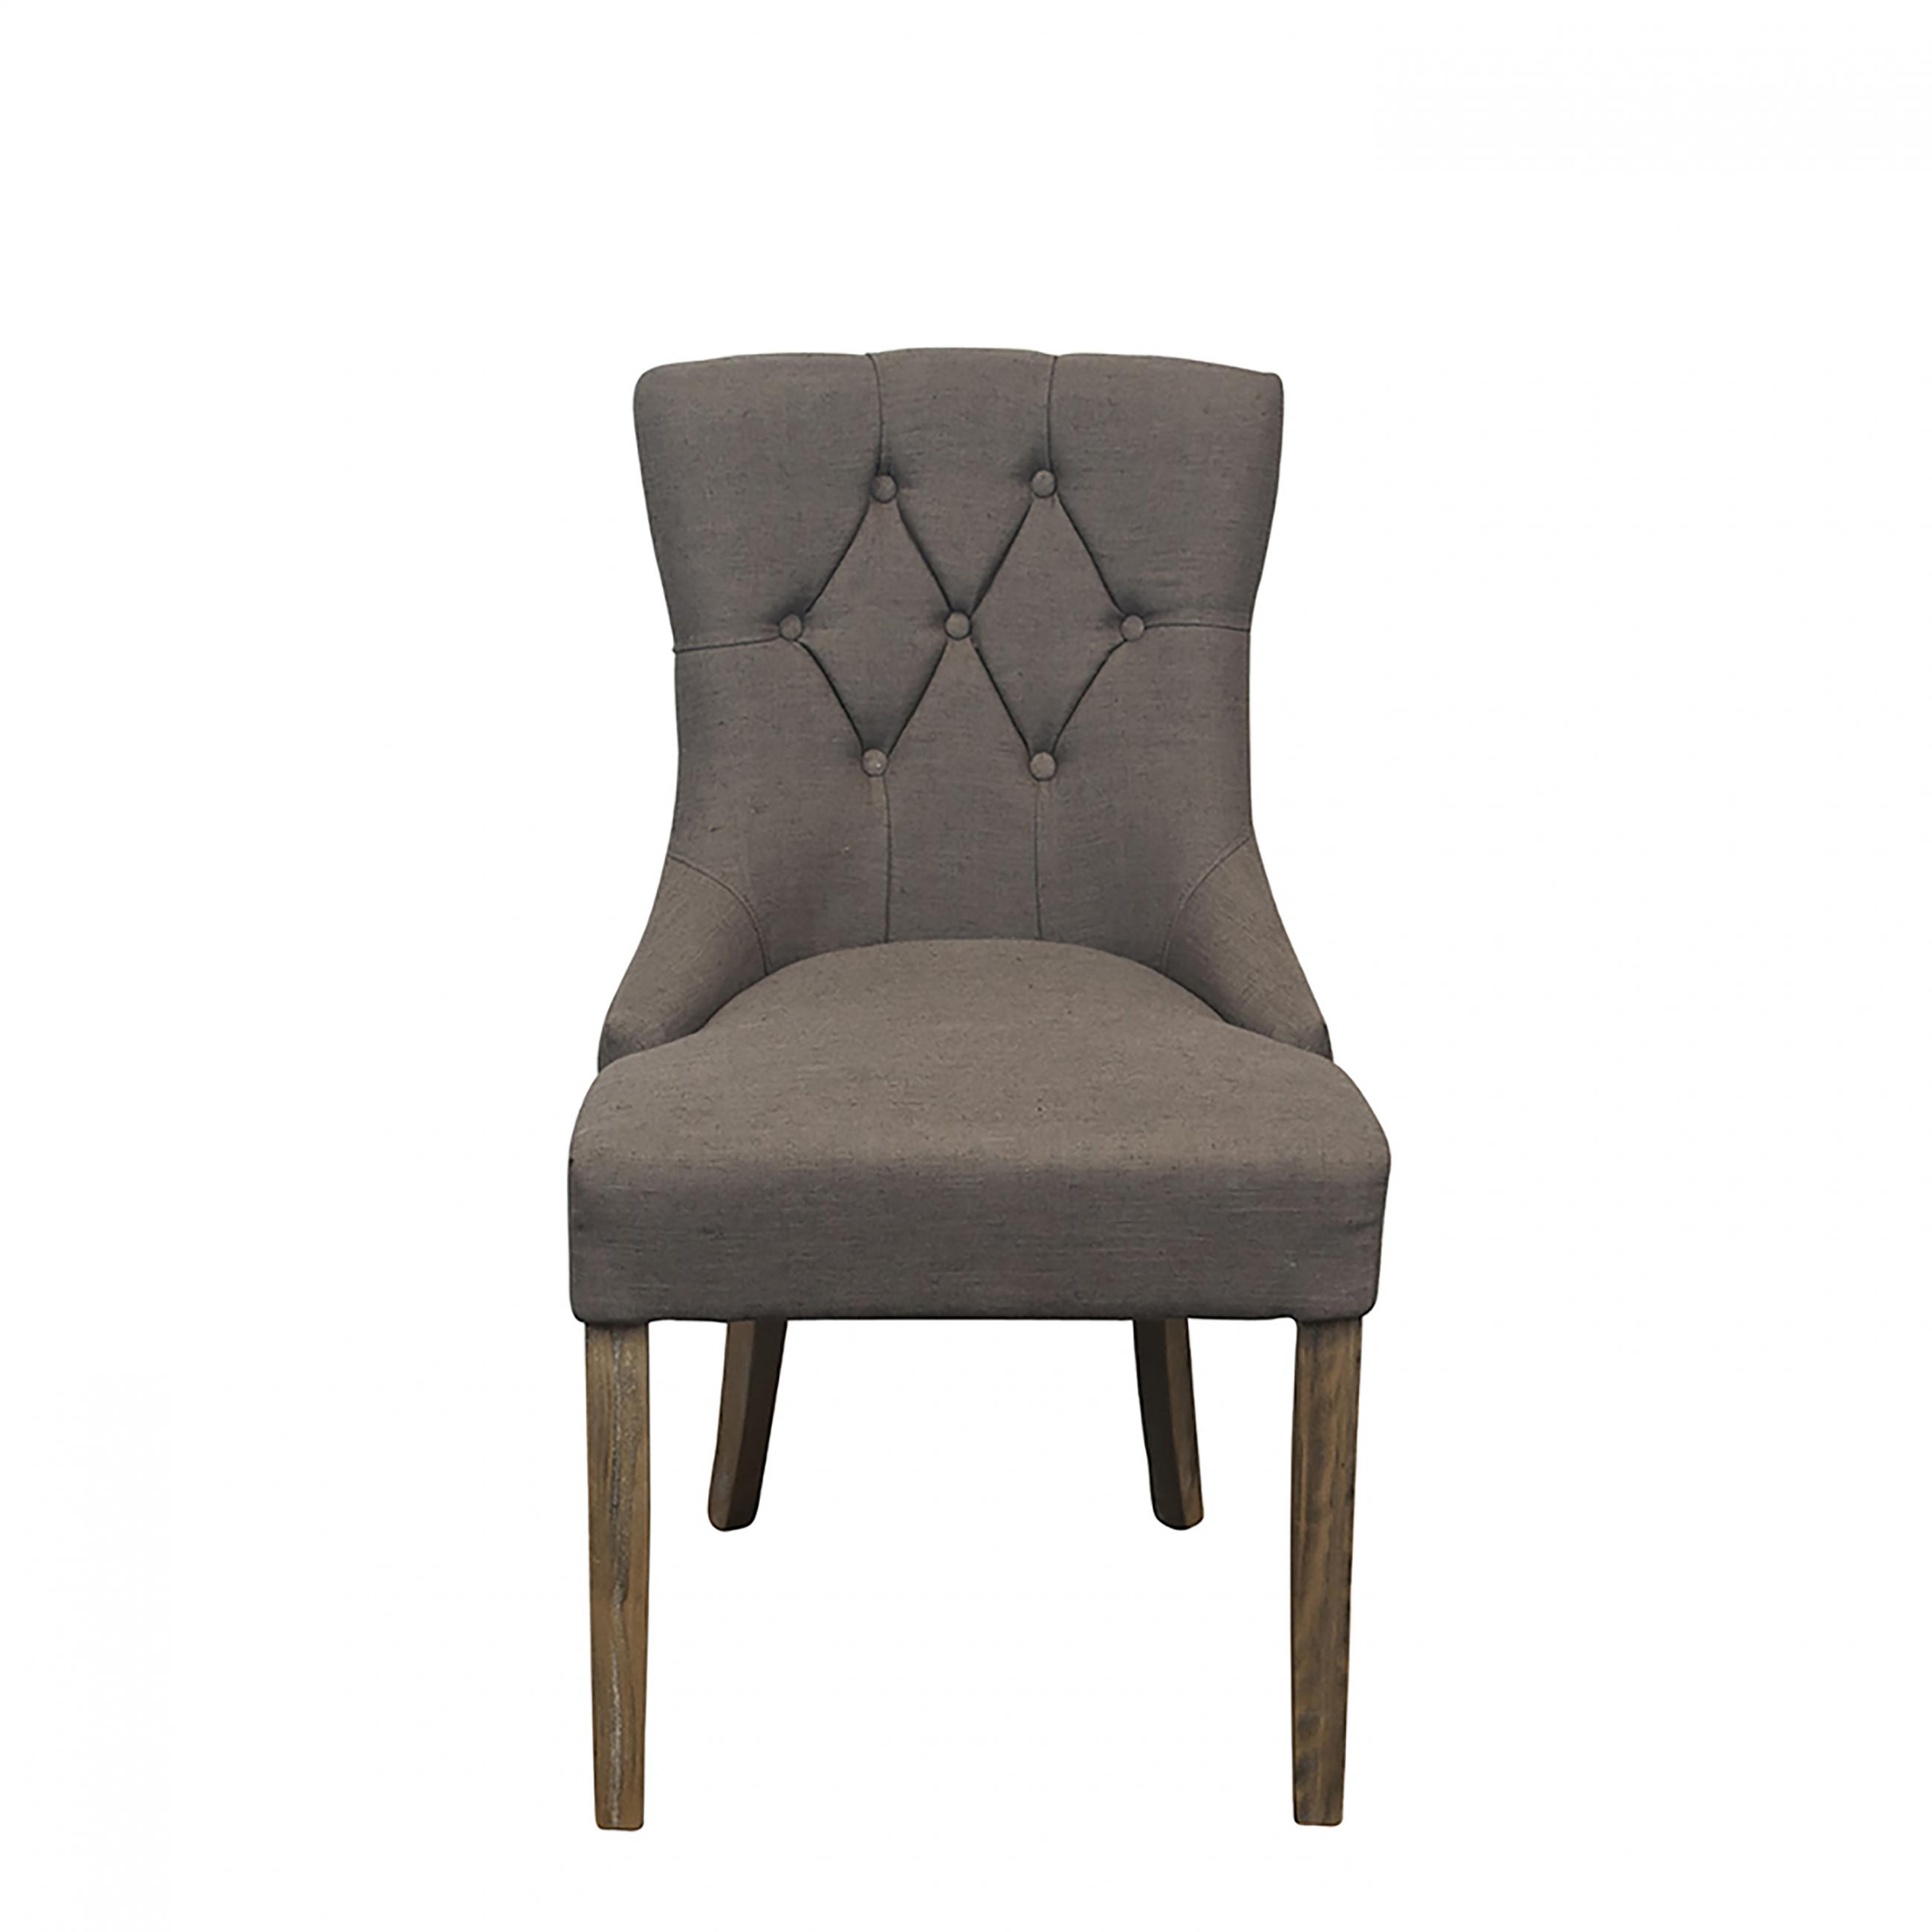 Tufted Dining Grey Chair Peak Event Services